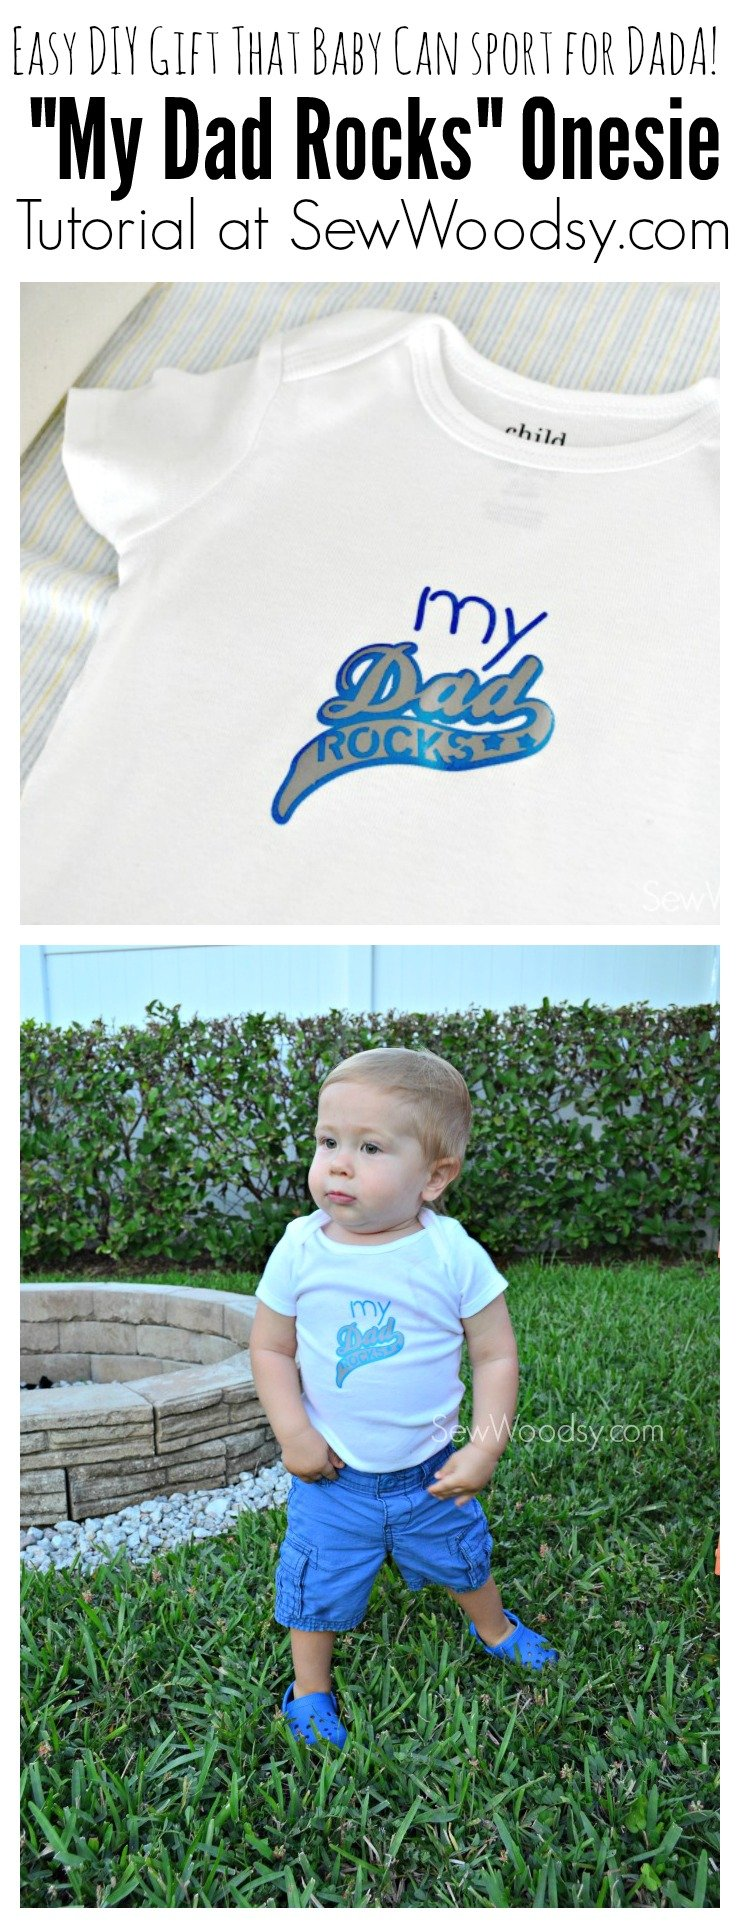 My Dad Rocks Onesie - easy DIY project that baby can wear to honor dad!